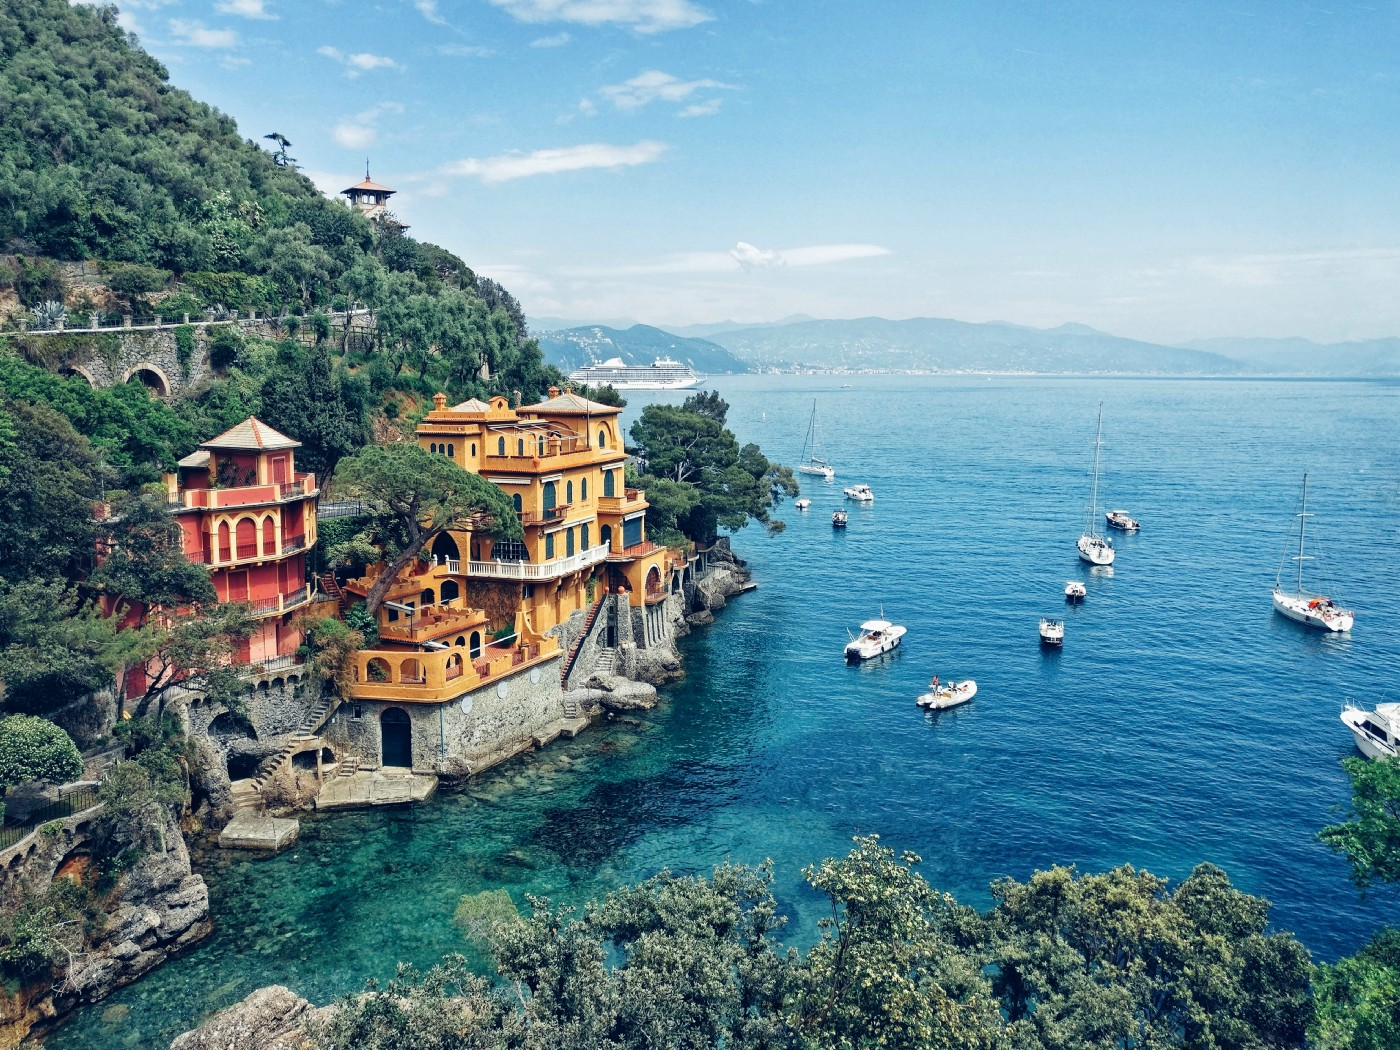 Large yellow mansion perched on a cliff overlooking an inlet on the sea near Portofino. There are many small boats moored and mountains can be seen in the distance.